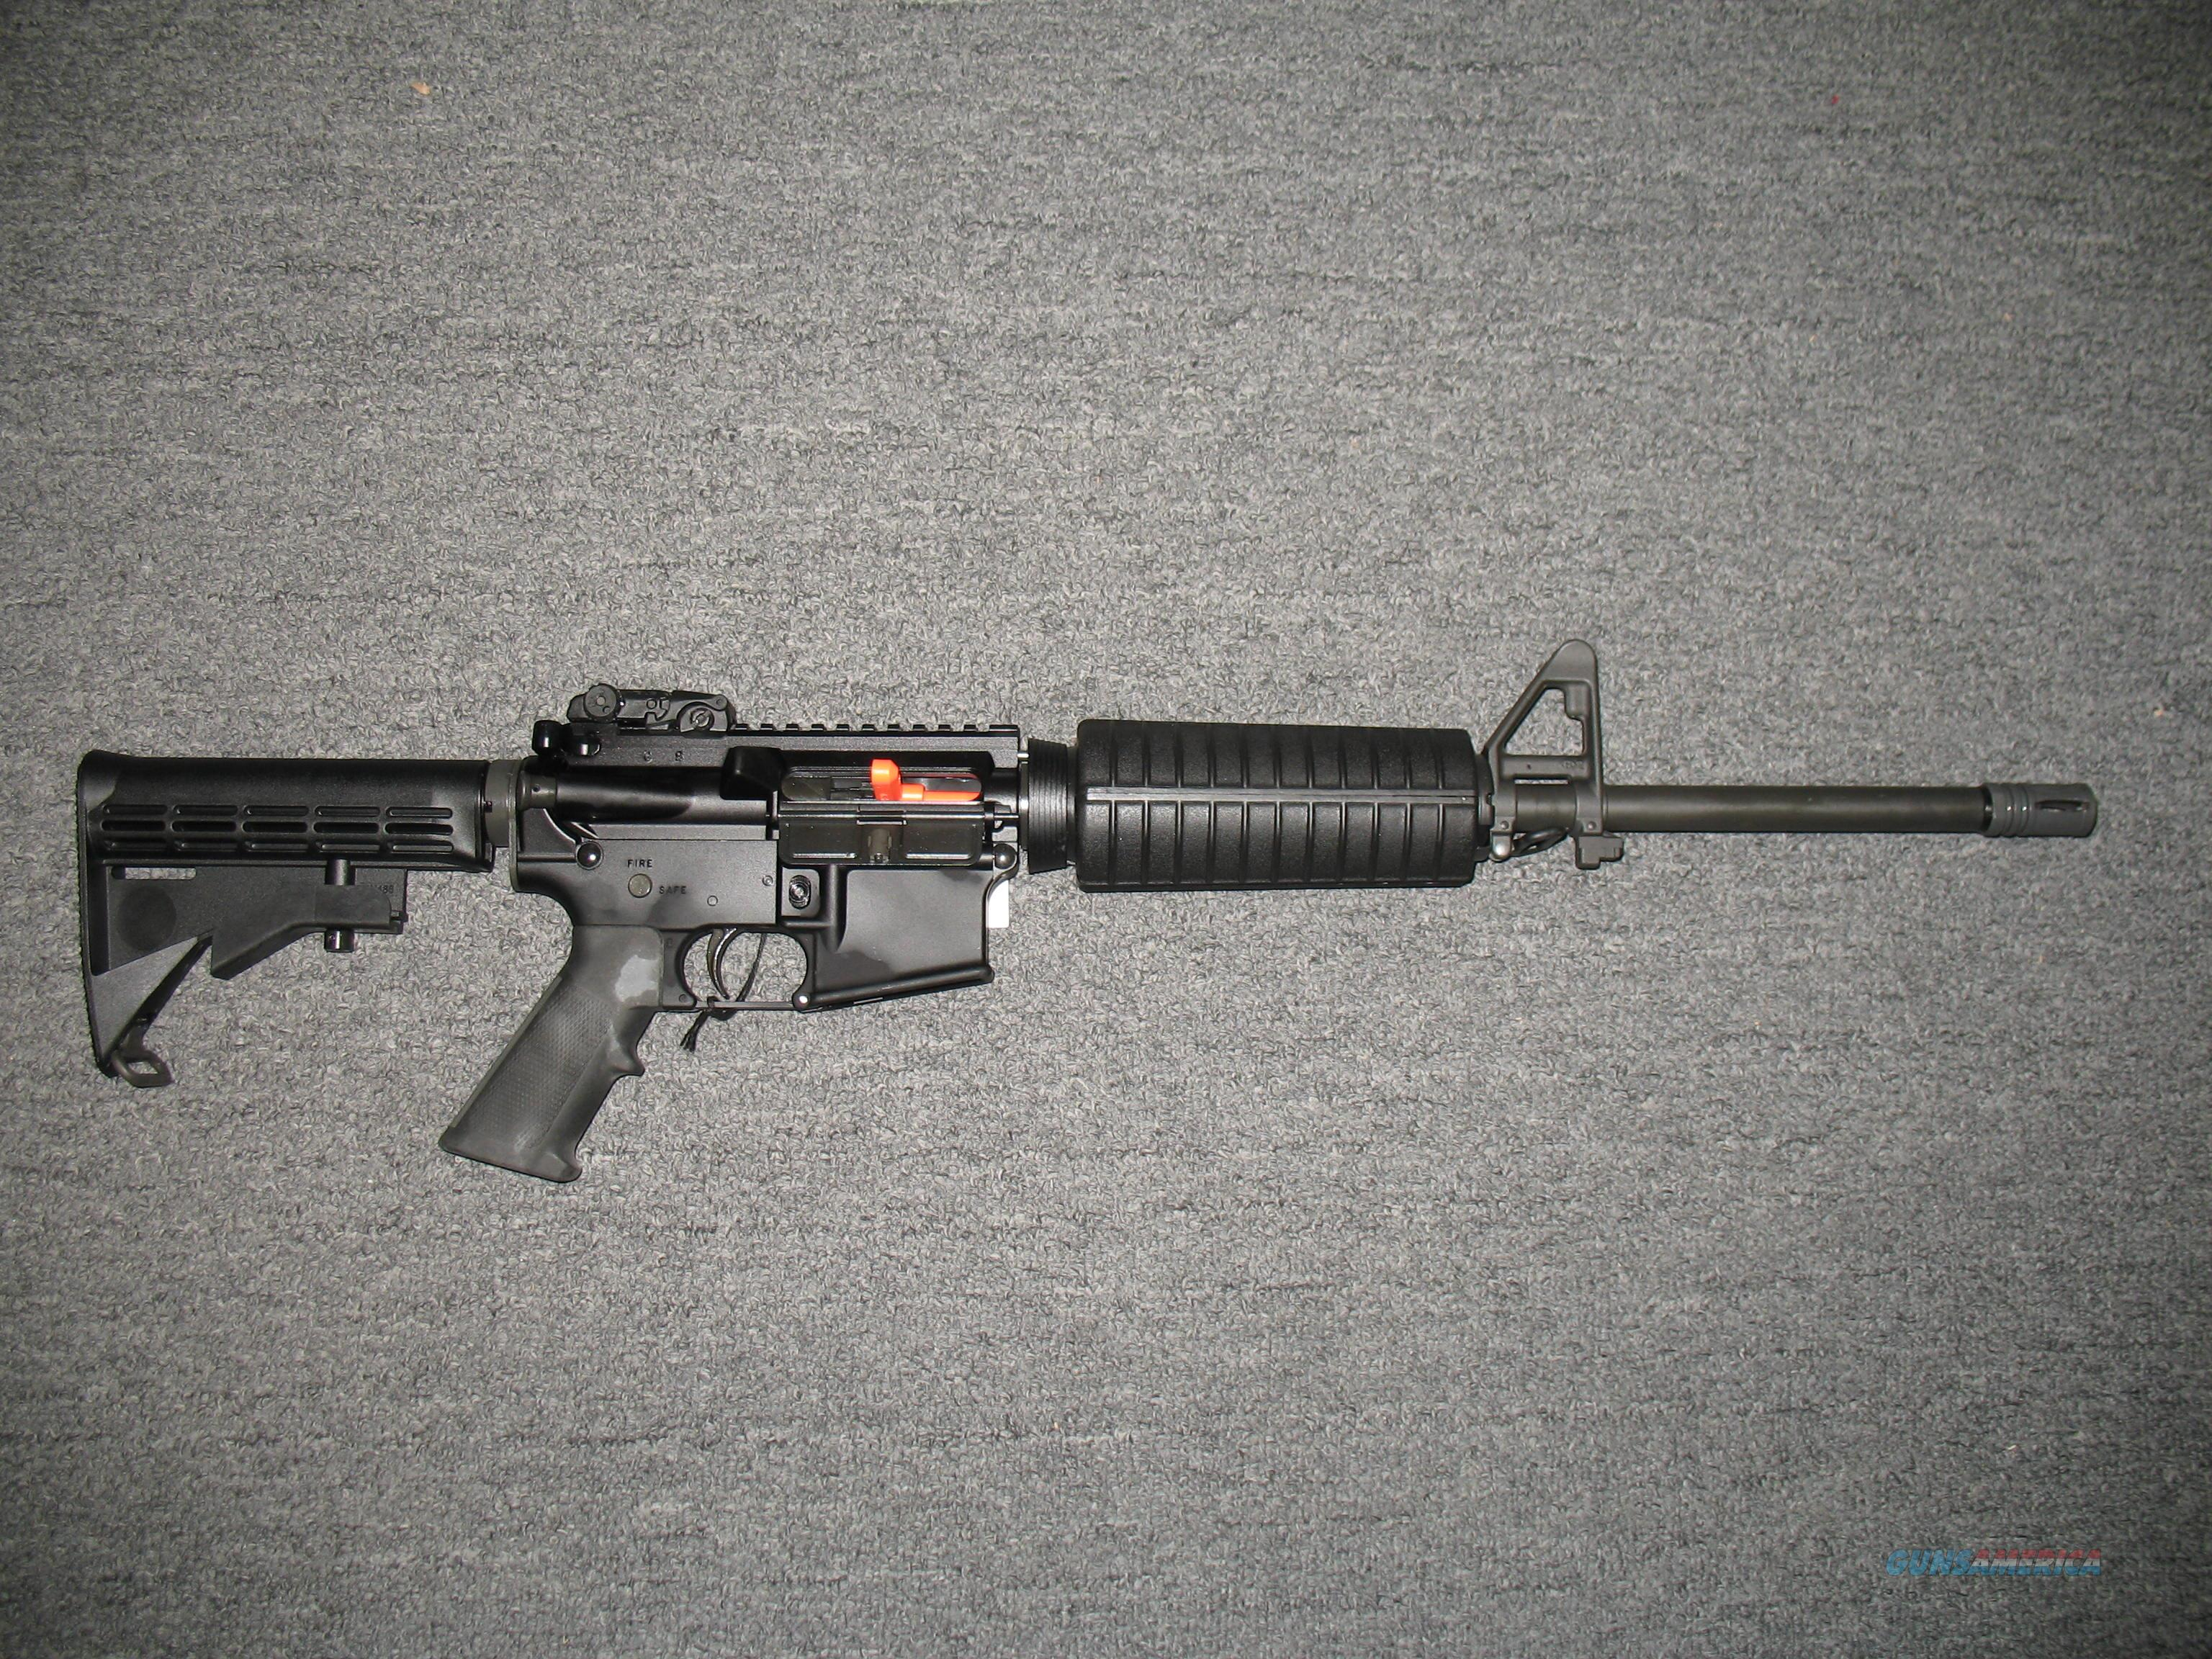 AR-15 A3 Carbine (AR6721)  Guns > Rifles > Colt Military/Tactical Rifles